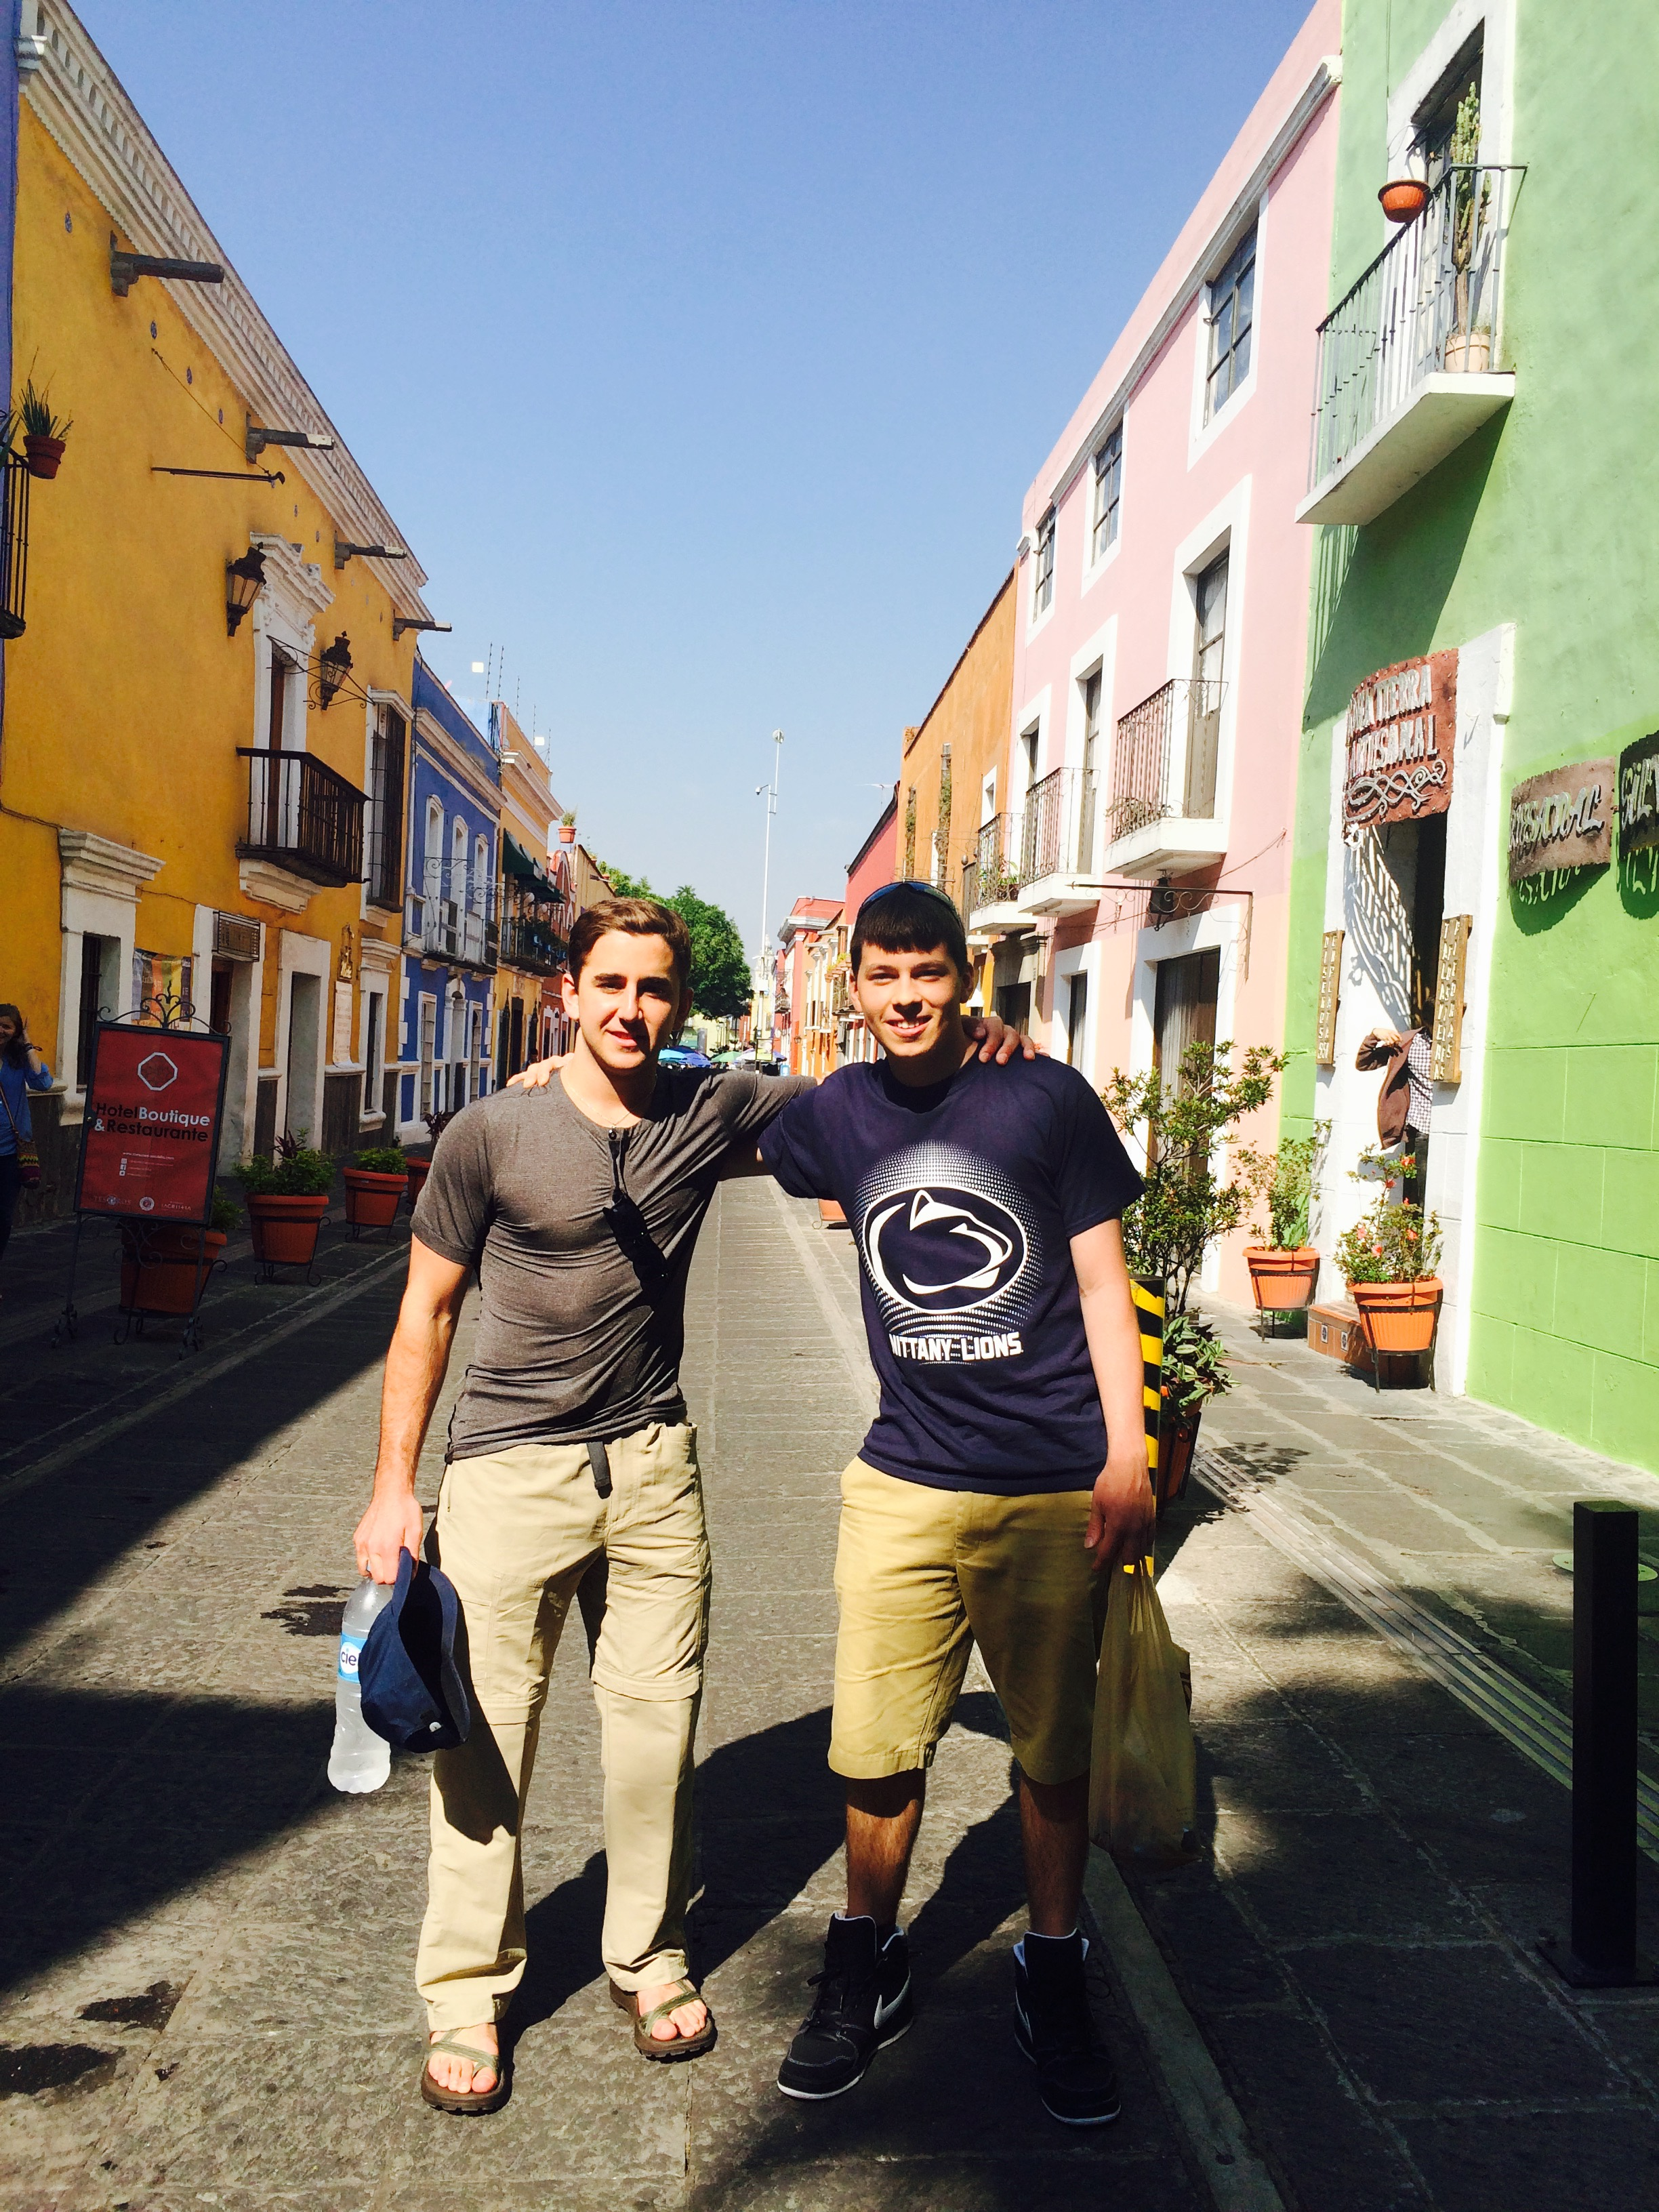 David Goodwin, Puebla-Mexico Summer 2015, Streets of Downtown Puebla